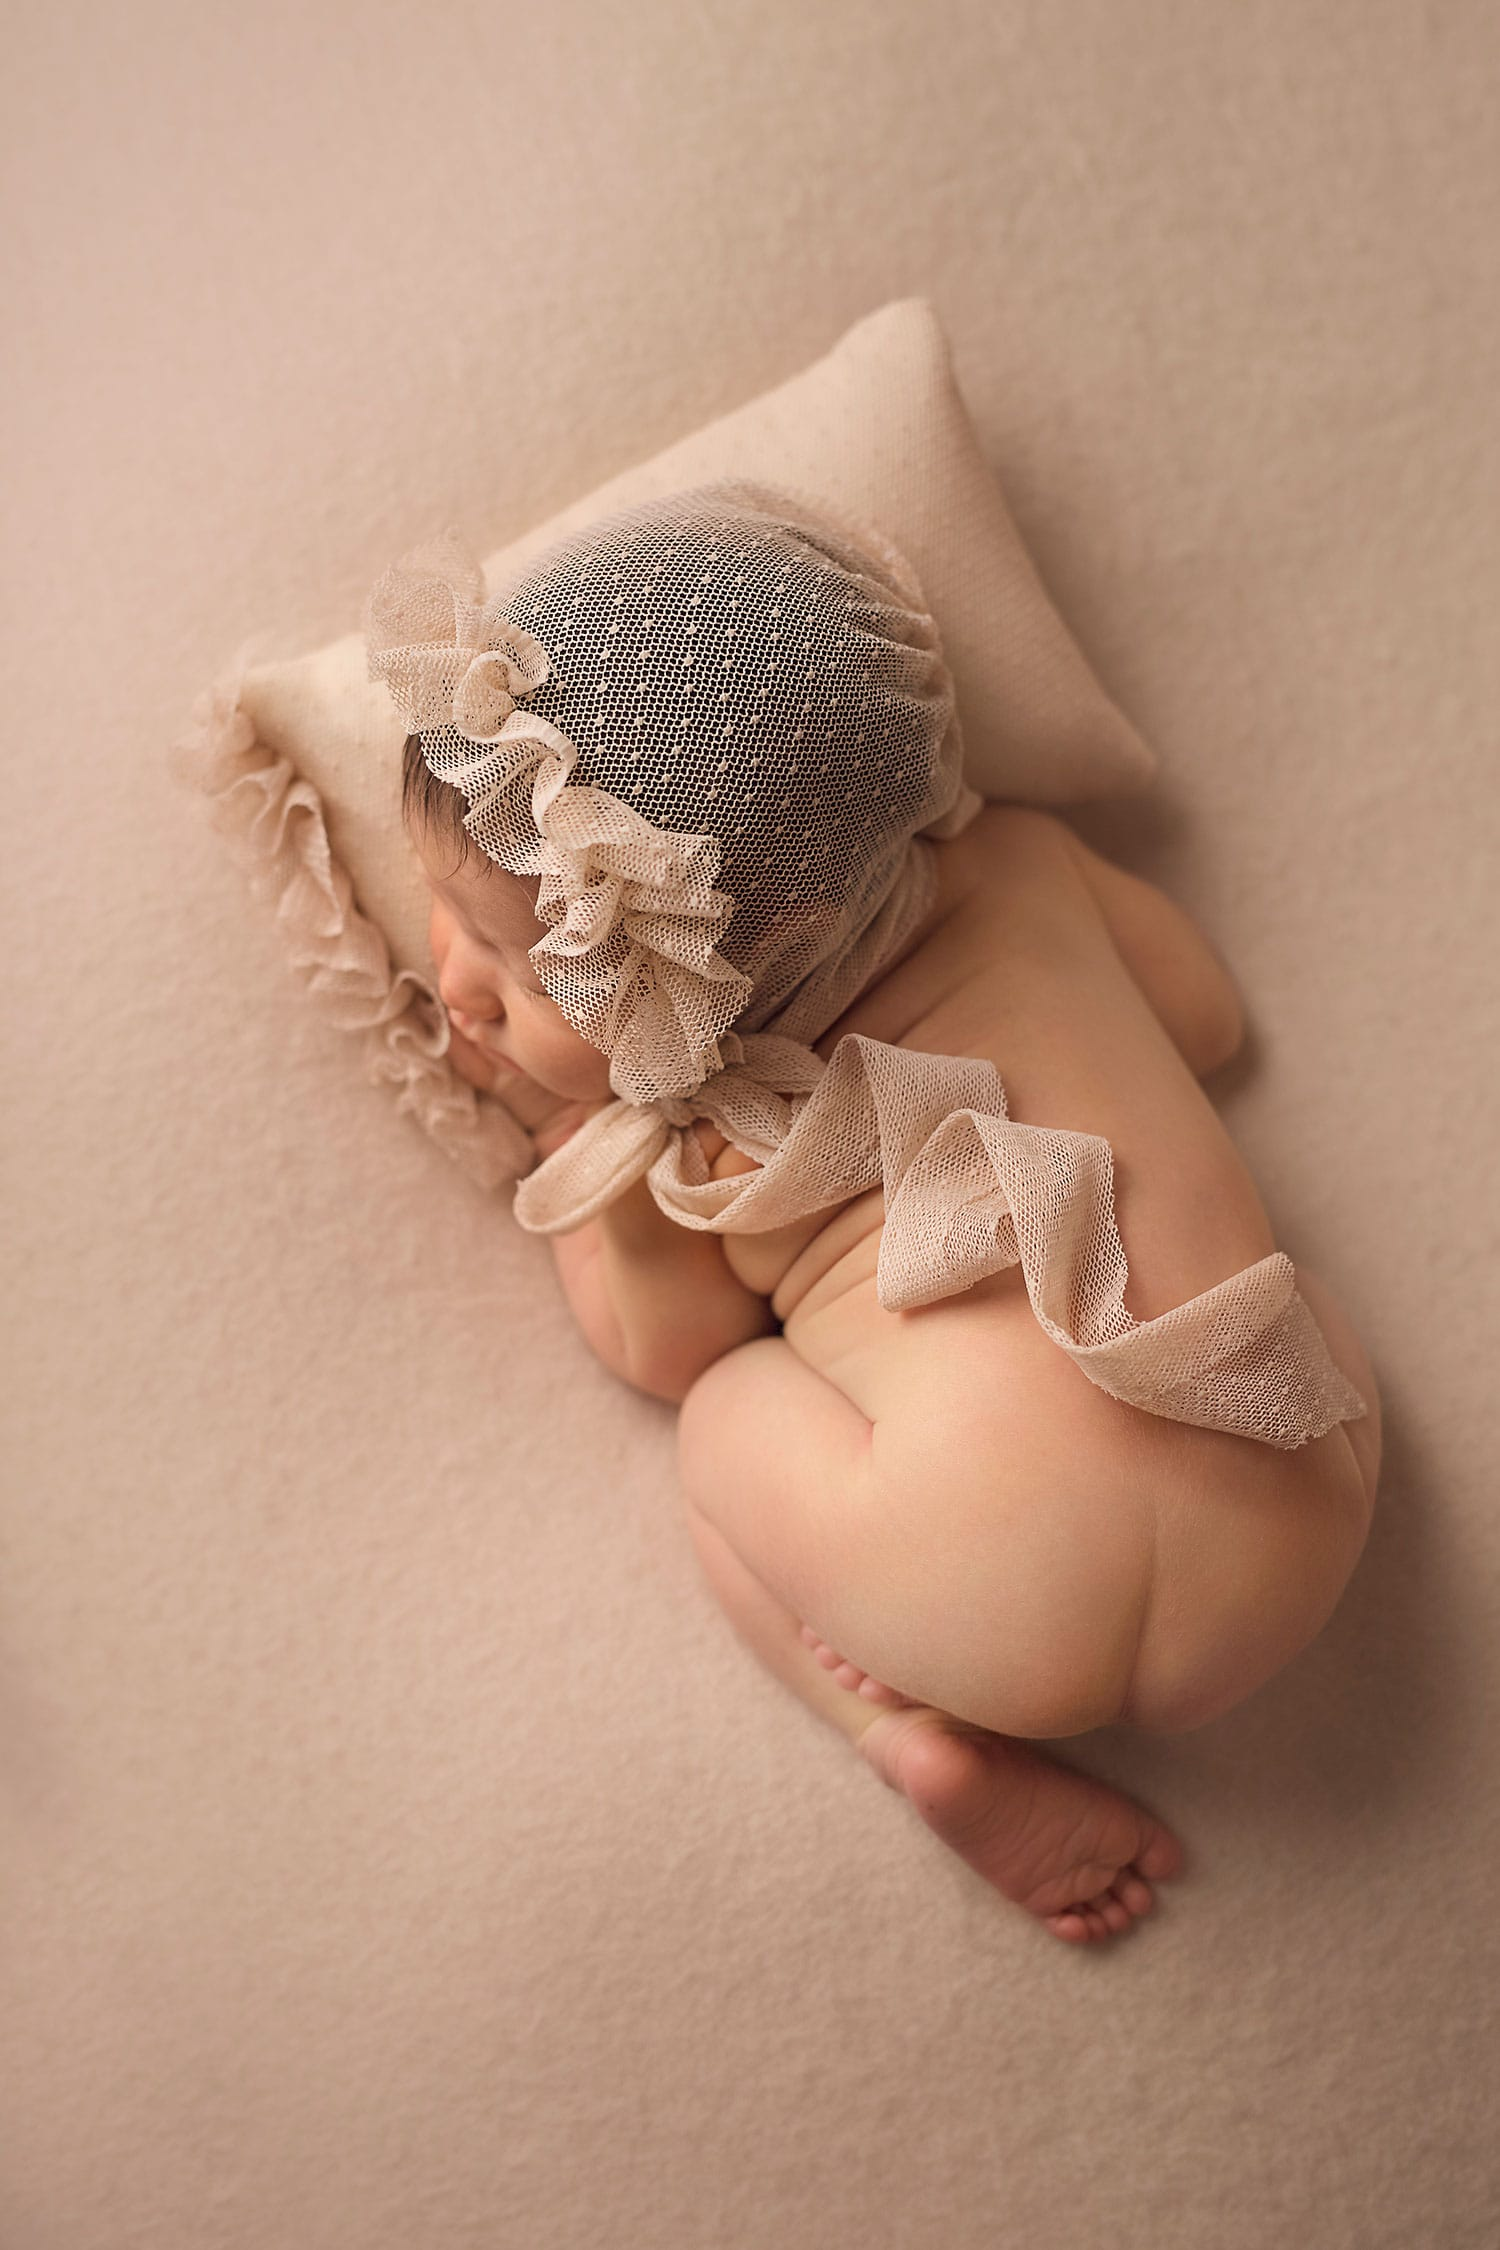 newborn baby in bum up pose by Annie Whitaker Photography